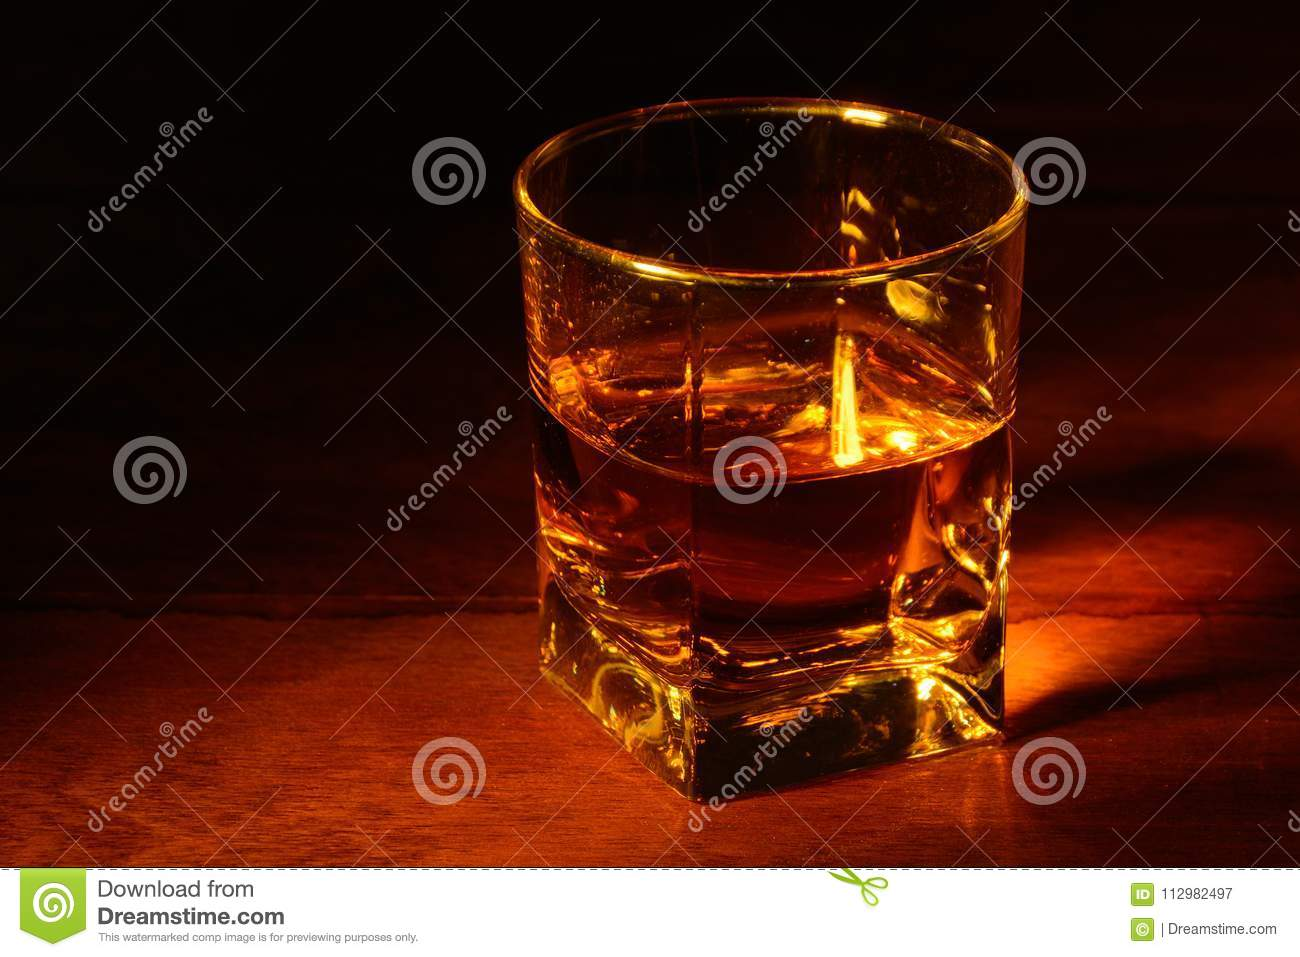 A glass of whiskey on a wooden table and a dark background